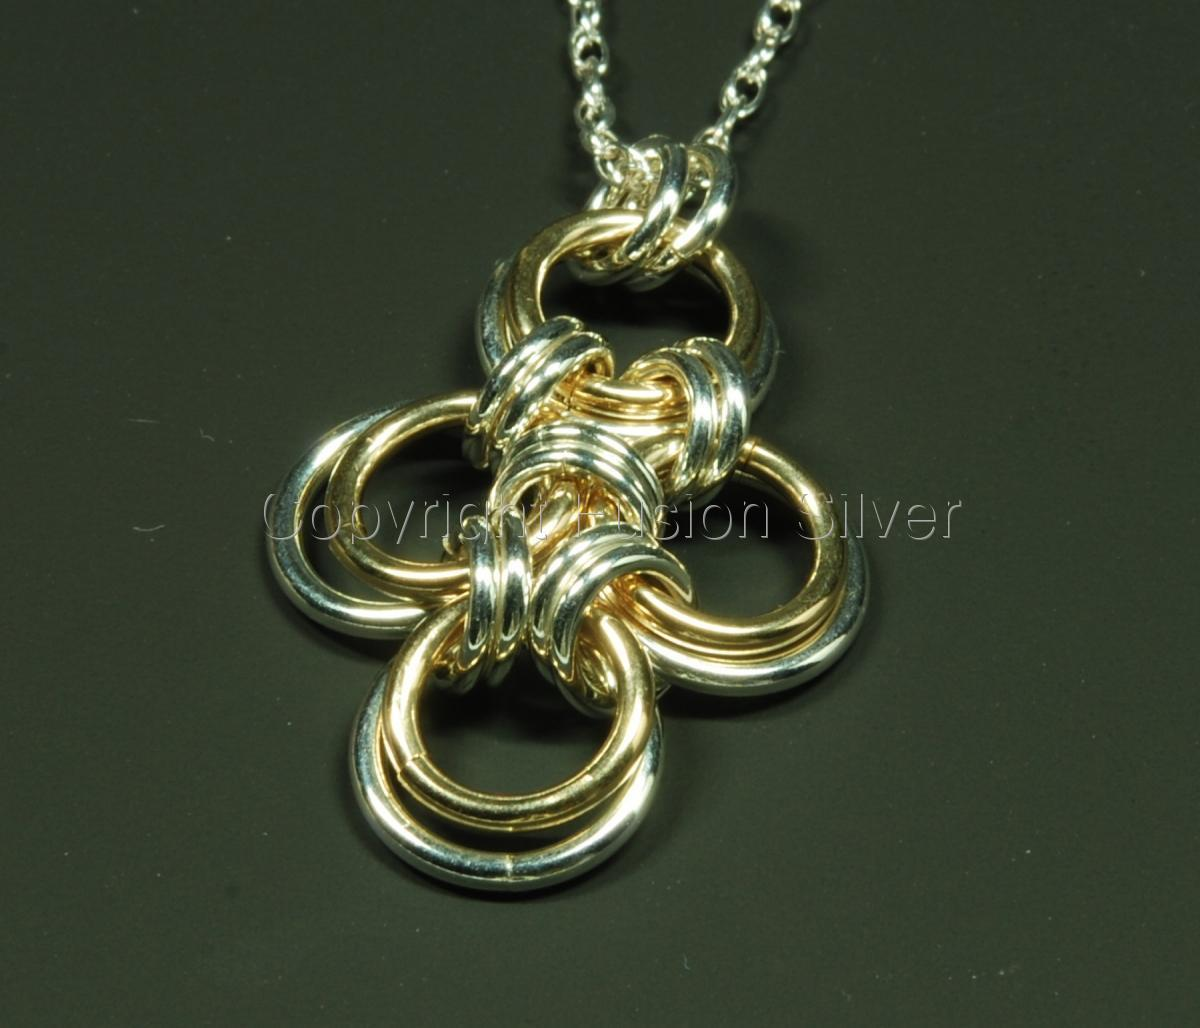 Japanese Cross - Silver and Gold (large view)